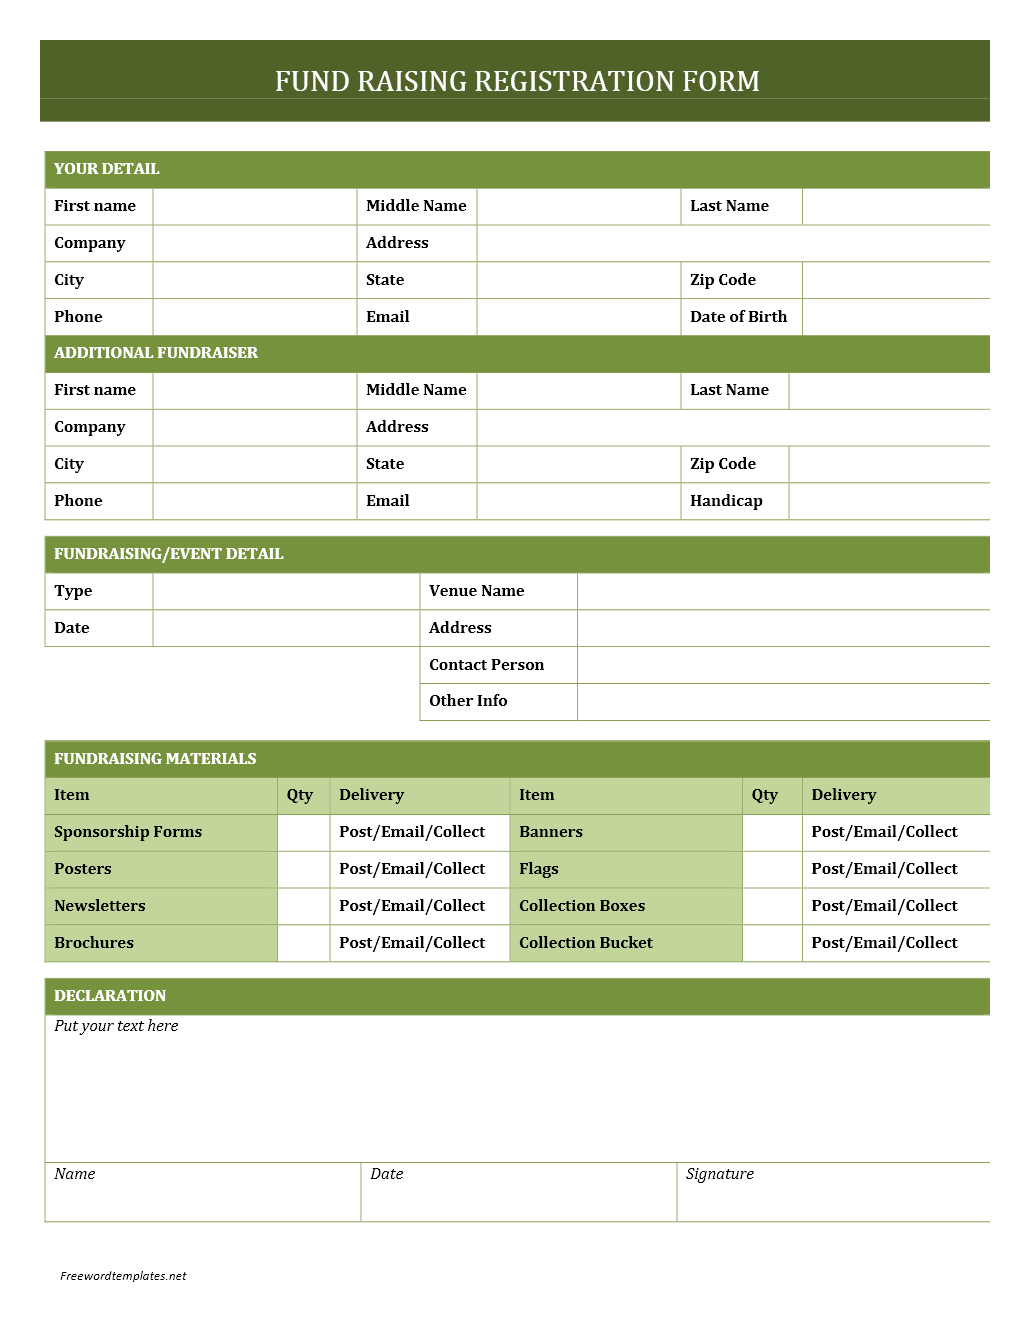 Fundraising Registration Form Template  Information Form Template Word